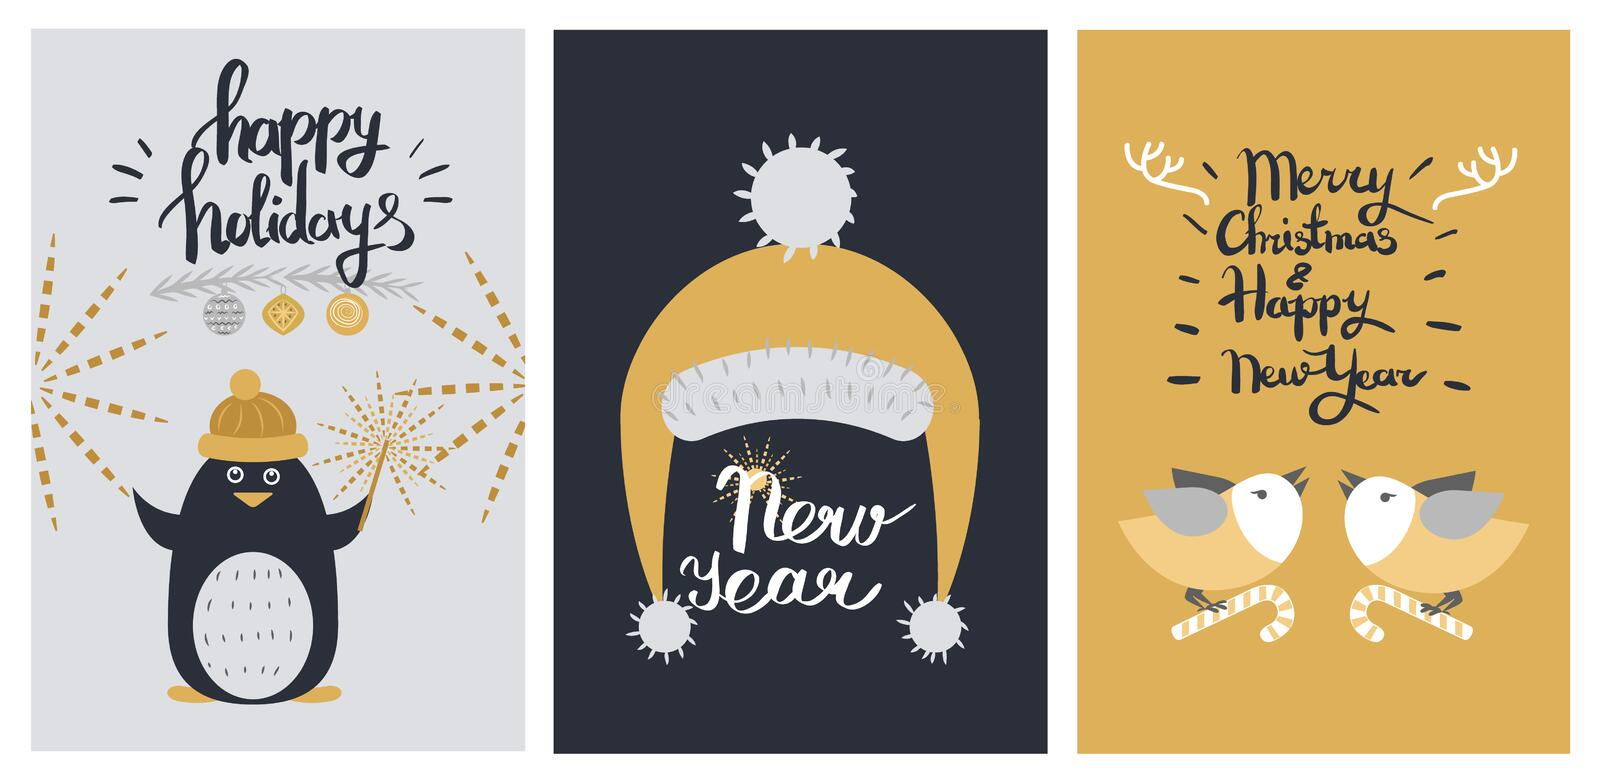 Happy Holidays and New Year Colourful Poster. royalty free illustration